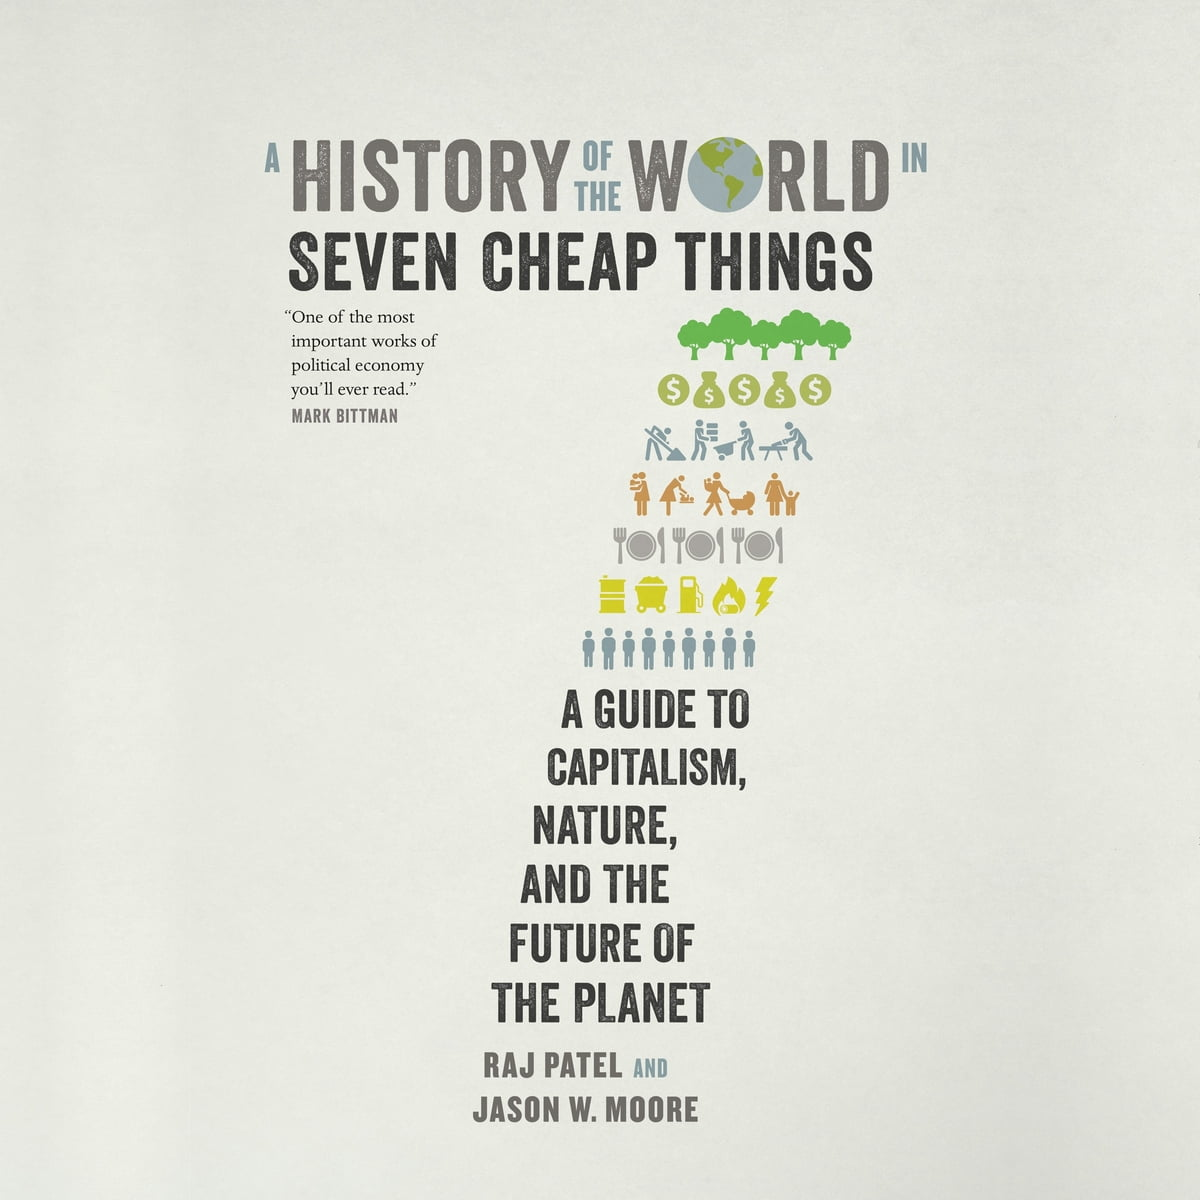 History of the World in Seven Cheap Things, A Audiobook by